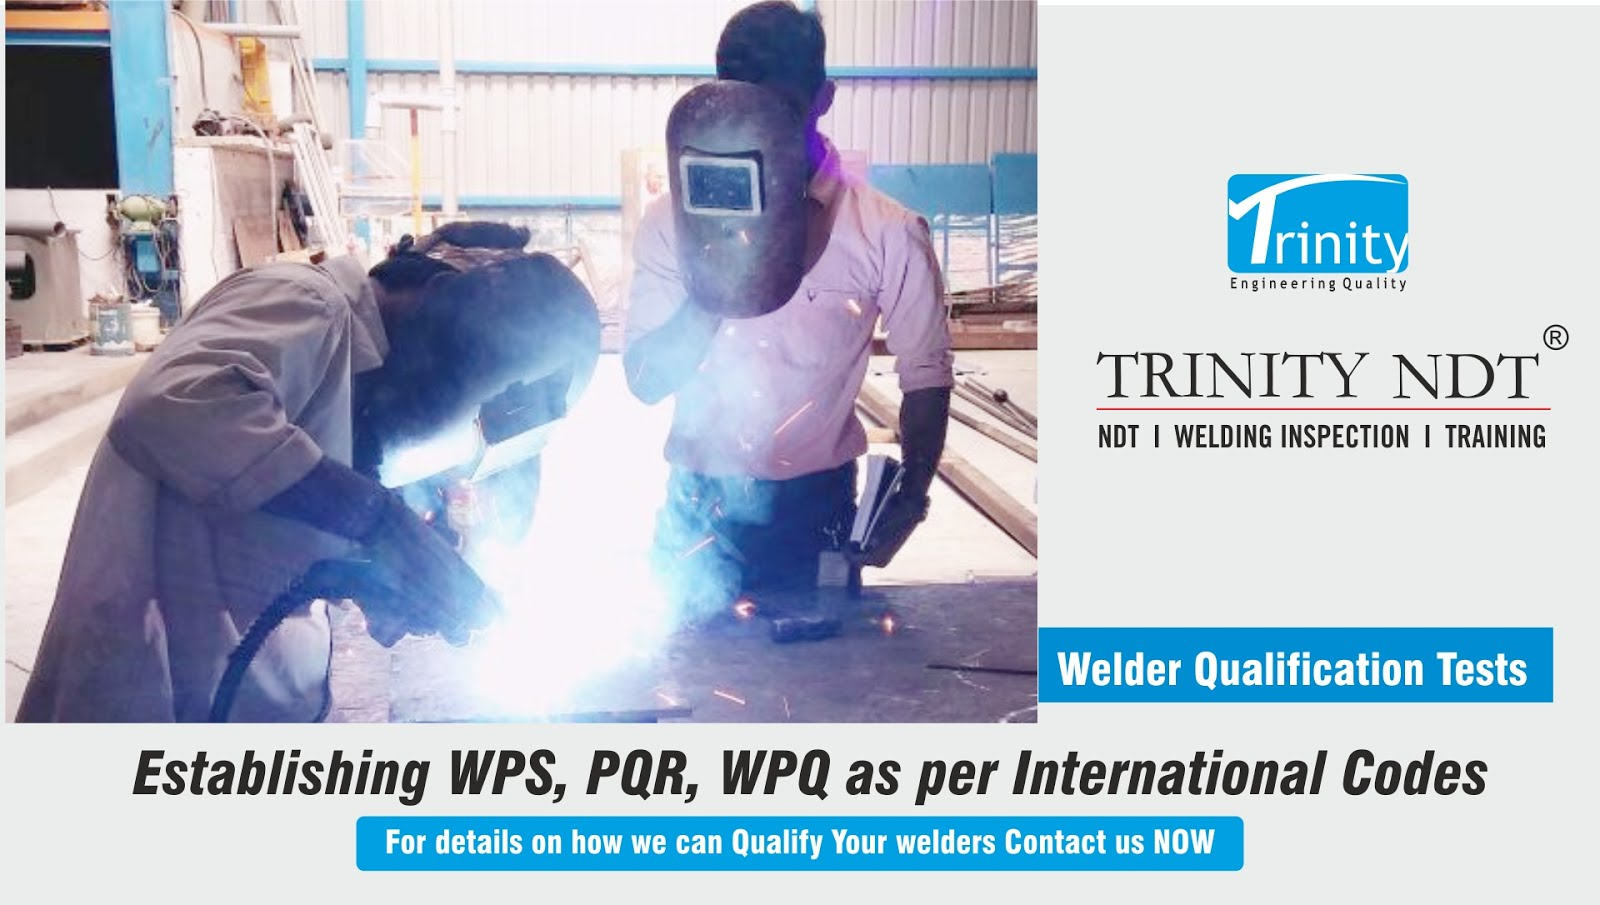 Welder Qualification Testing - Trinity NDT Welding Inspection Experts